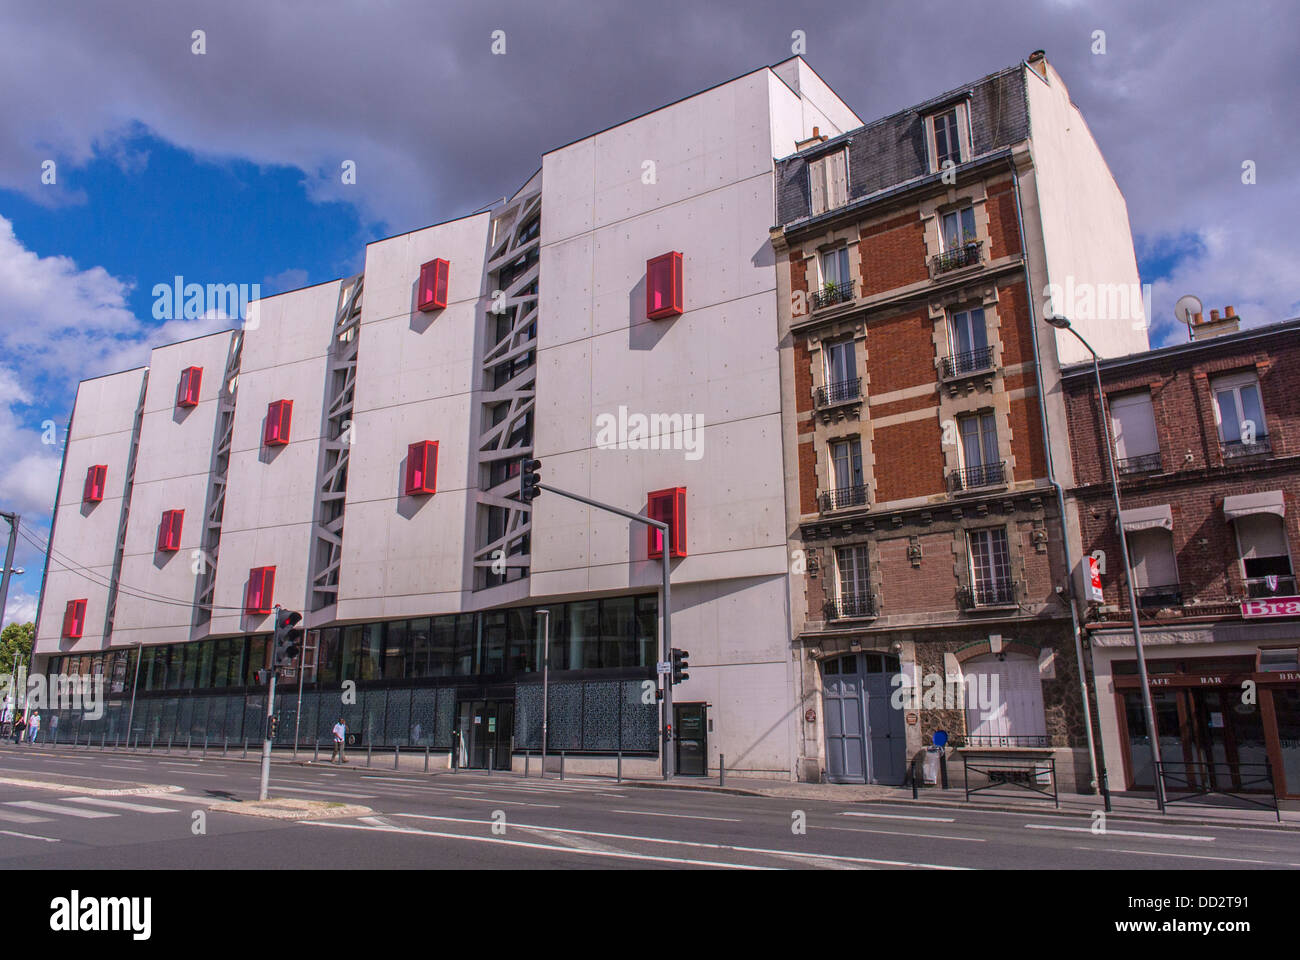 Clichy, France, Paris, Suburb, Contrast Old & New Architecture Buildings - Stock Image